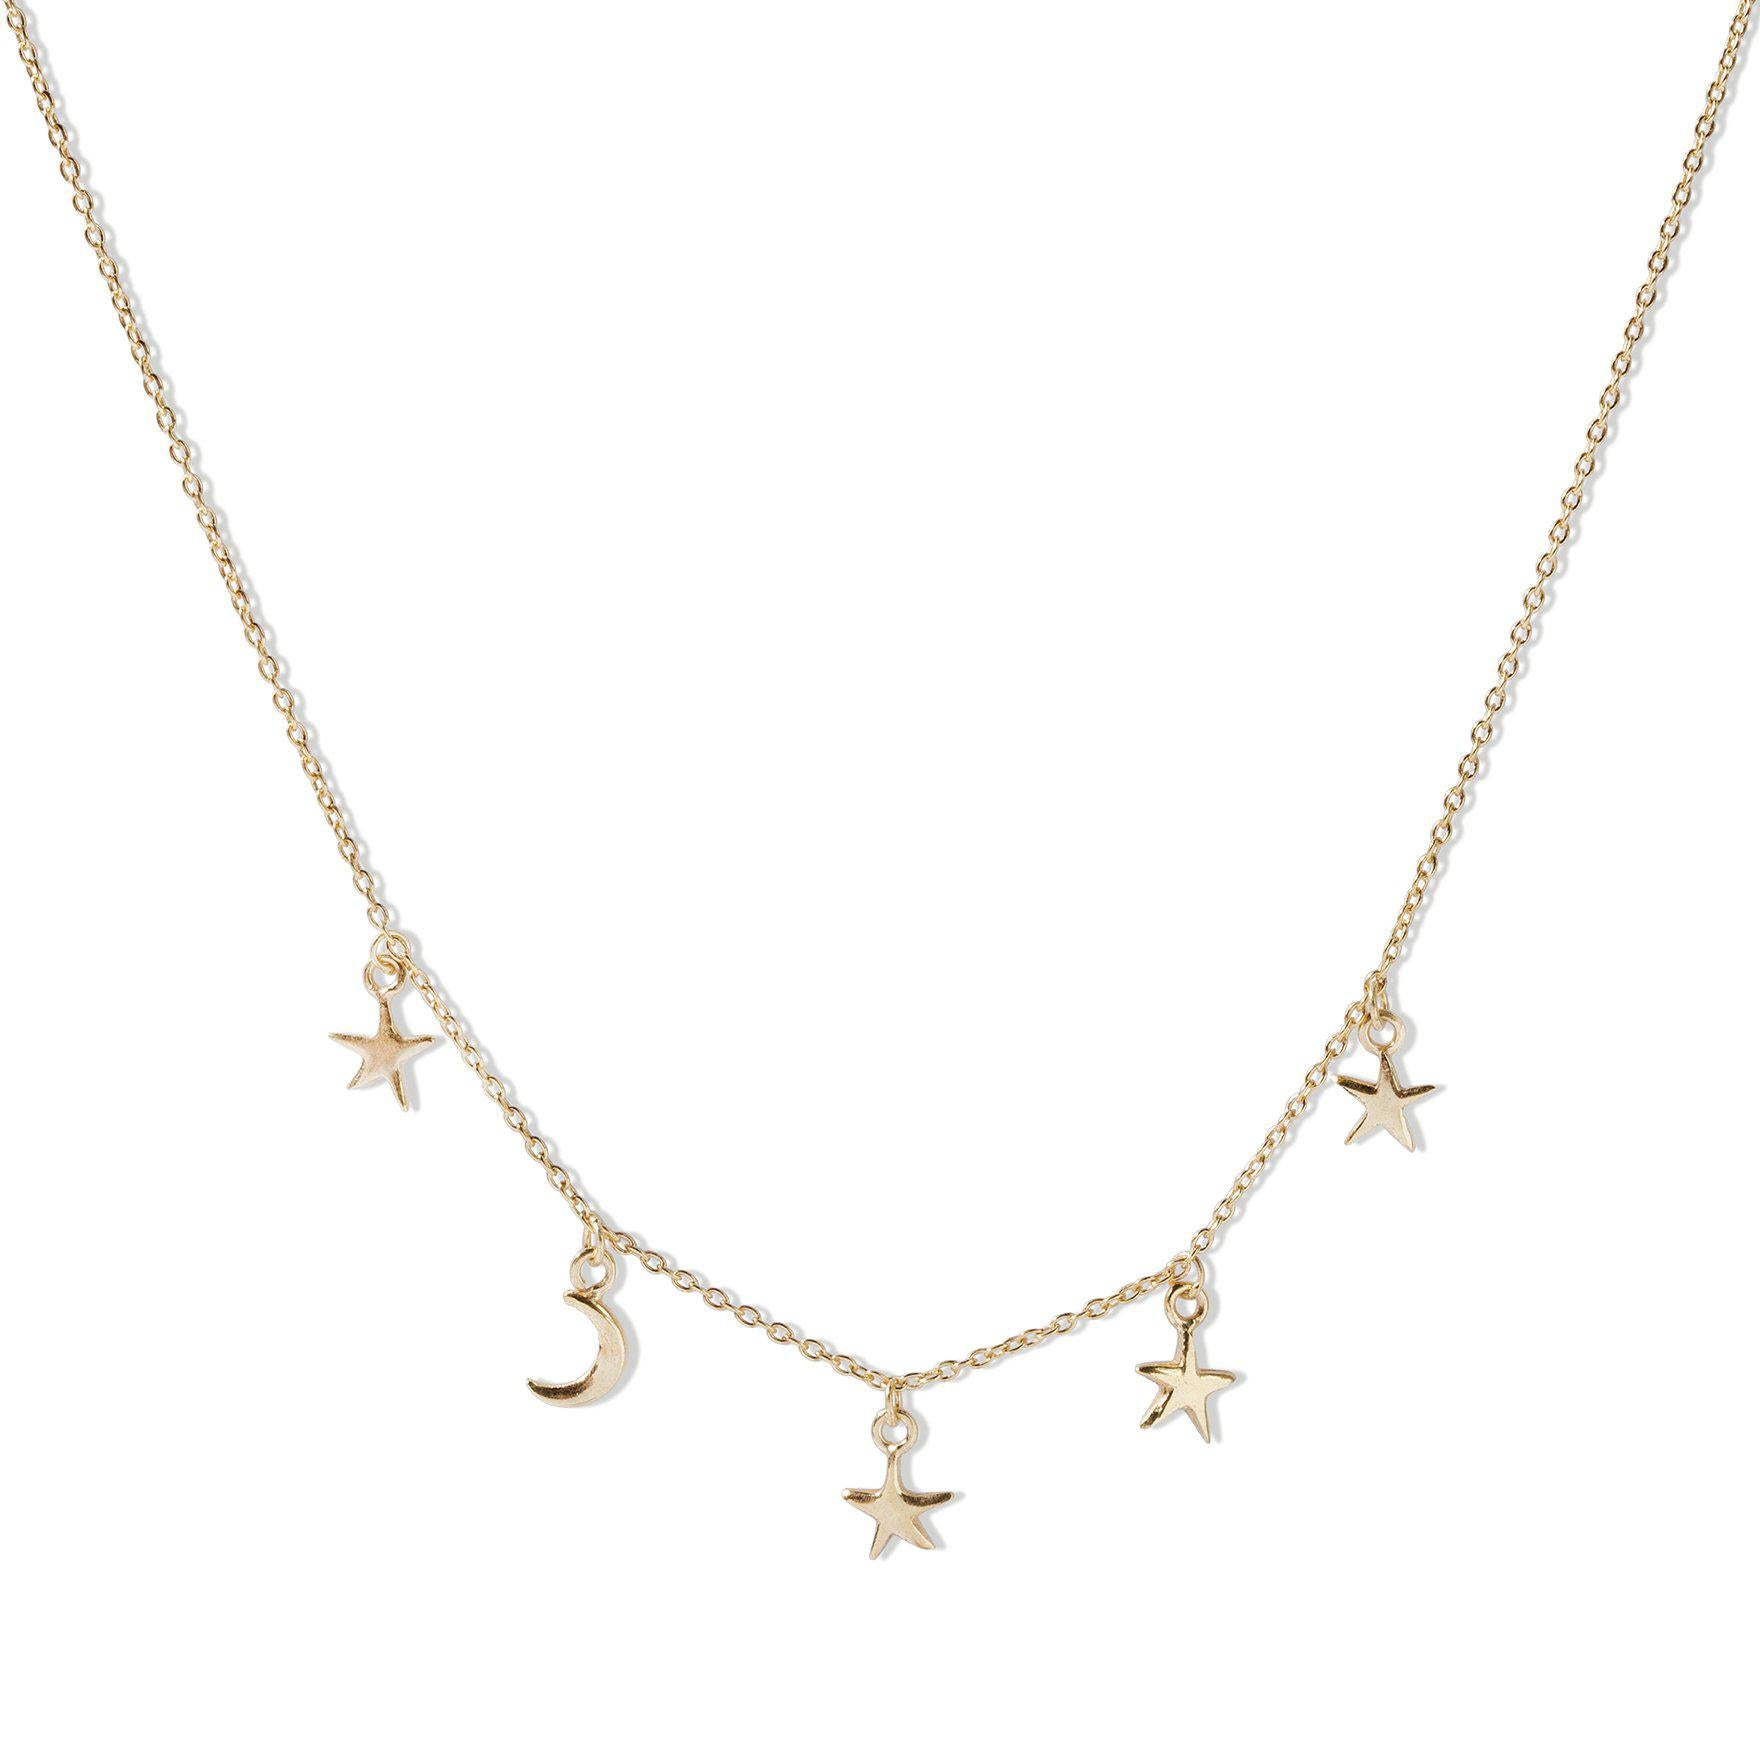 The Starry Night Necklace - Gold Plated